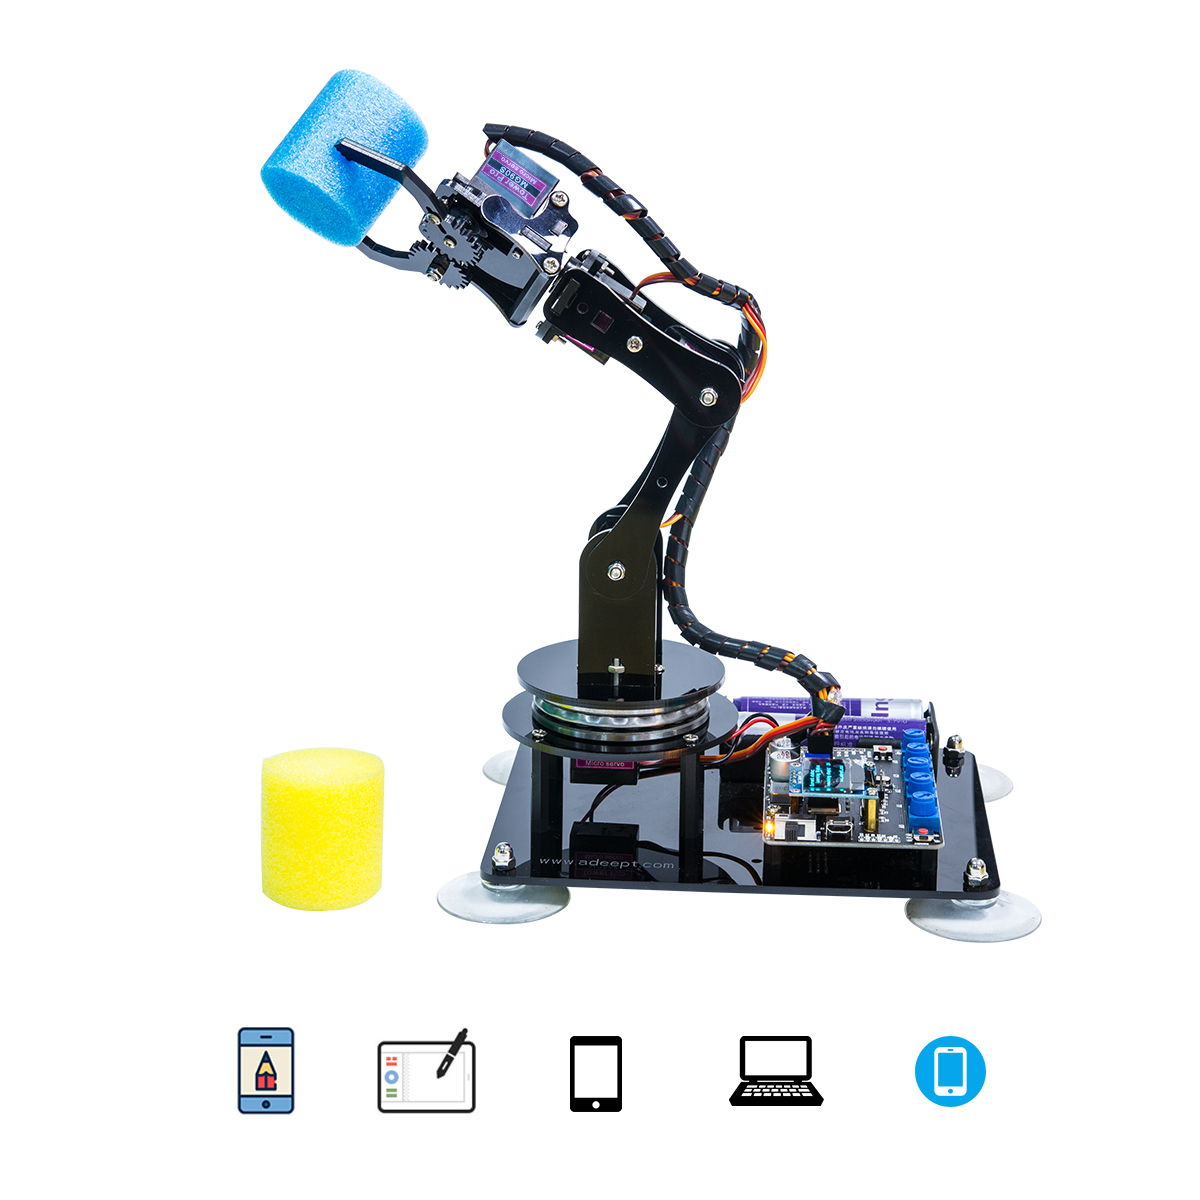 Adeept Arduino Compatible DIY 5-DOF Robotic Arm Kit for Arduino UNO R3 | STEAM Robot Arm Kit with Arduino and Processing Code